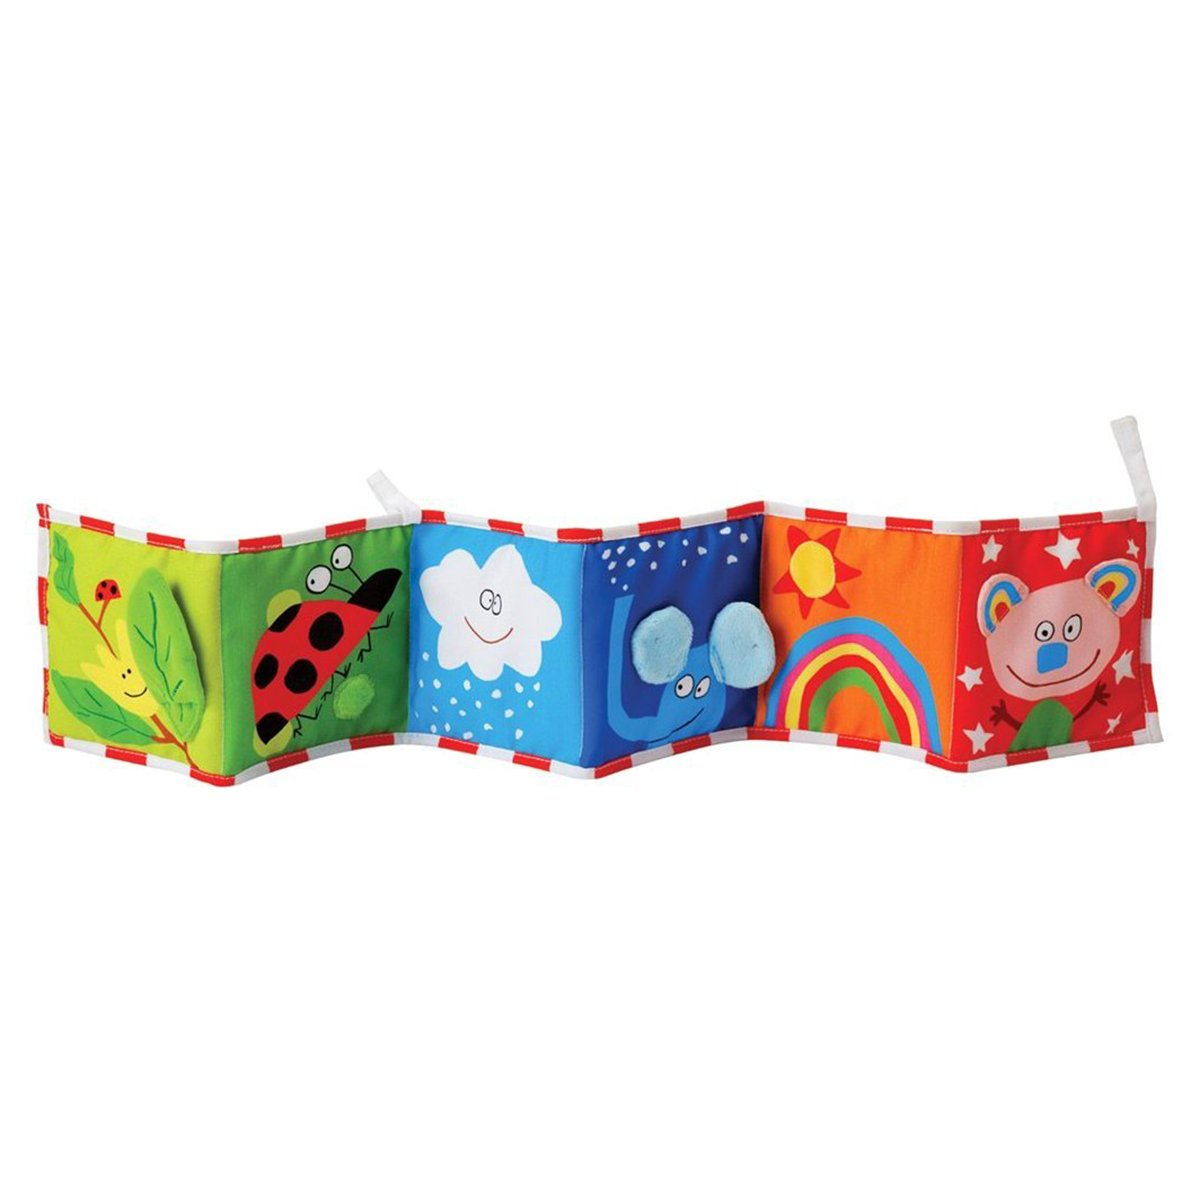 YeahiBaby Clip-on Pram Book for Baby Stroller Pram Carriage and Crib Entertainment and Development Ladybug Pattern